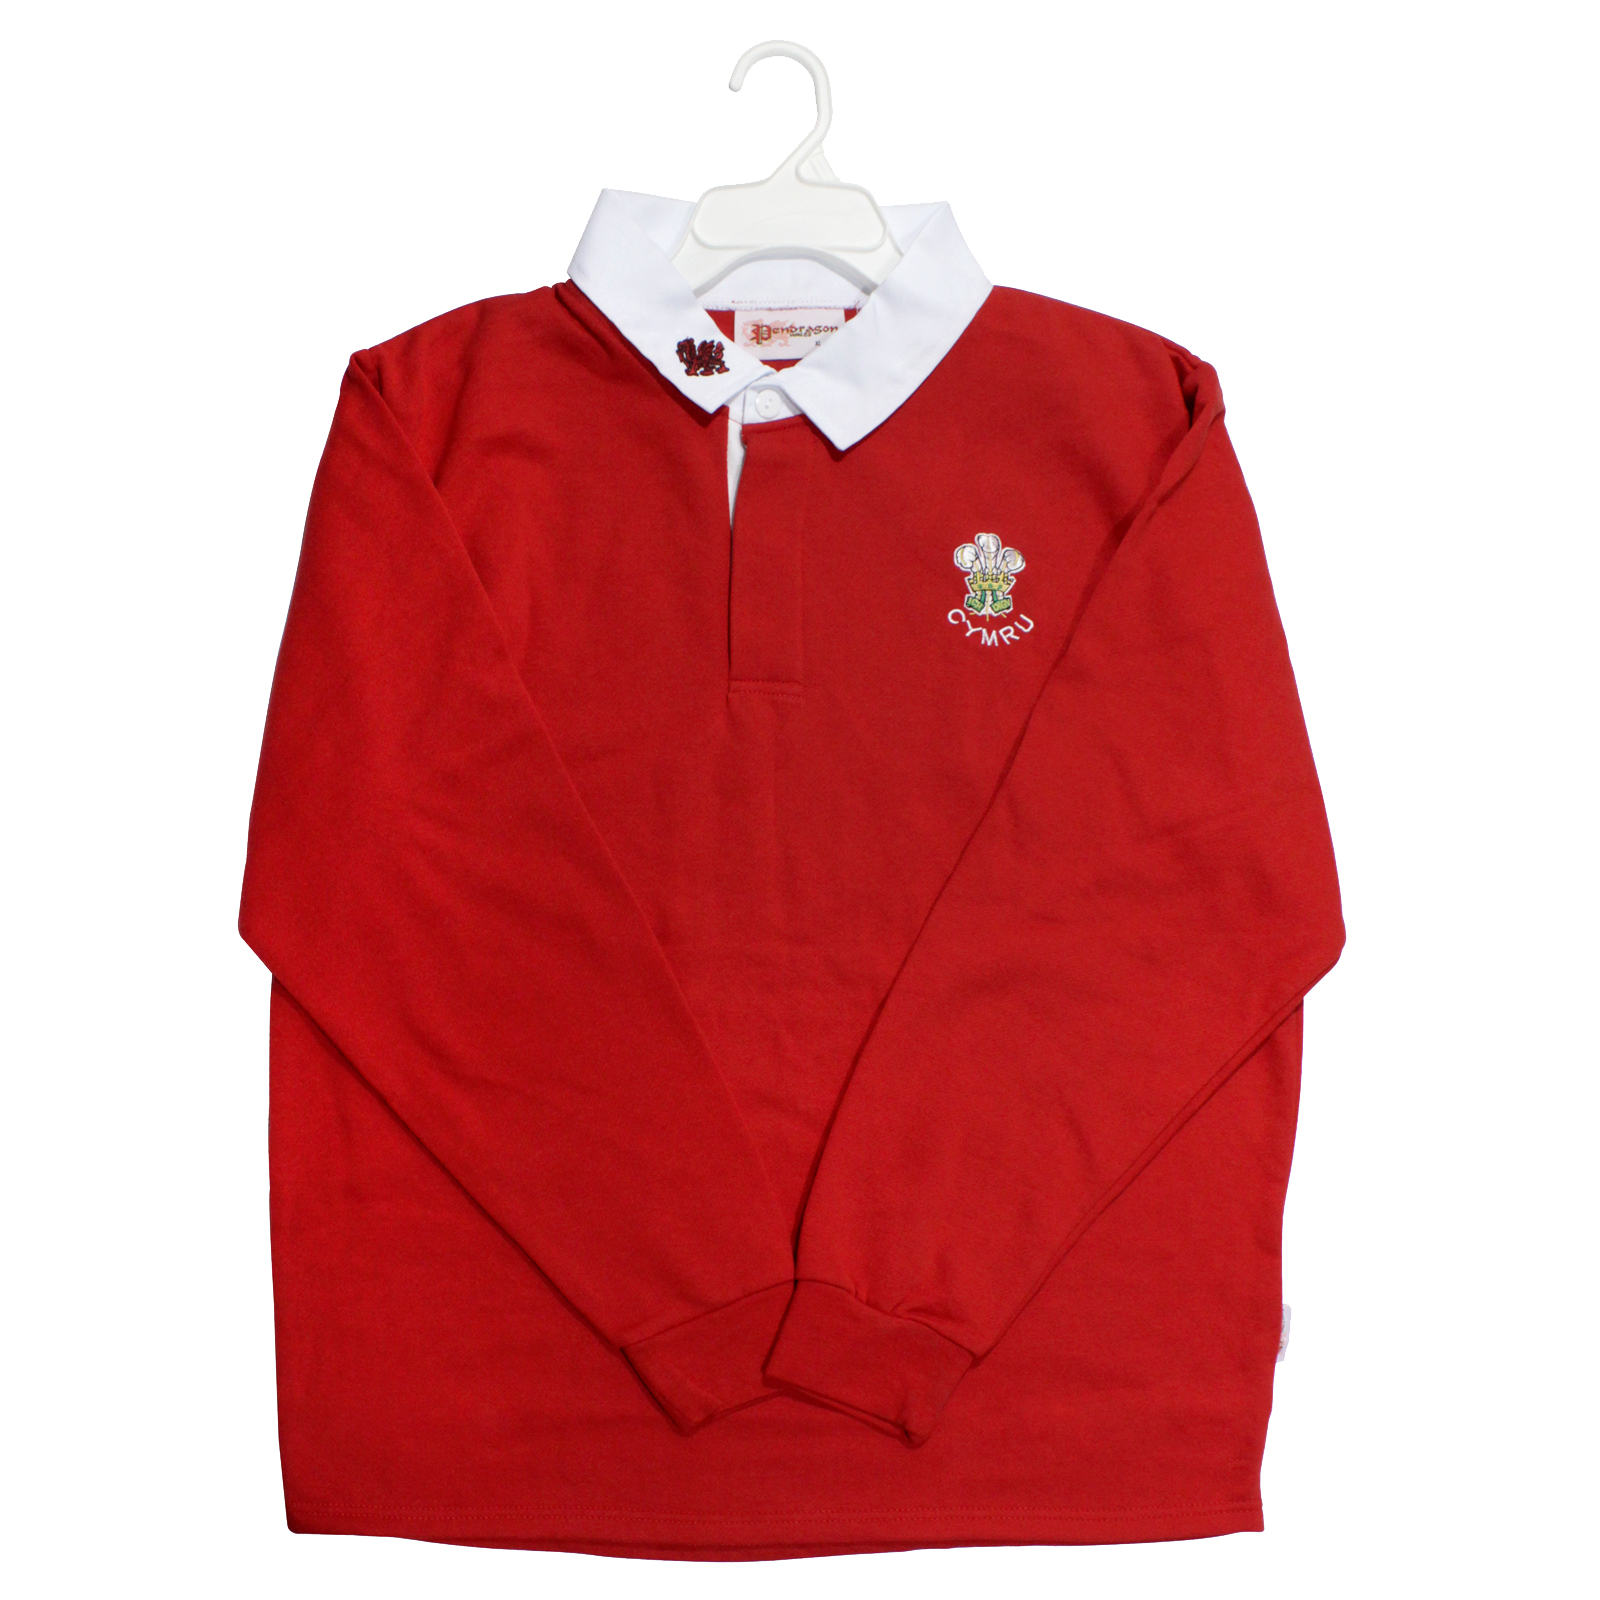 ST DAVIDS RUGBY SHIRTS ADULTS